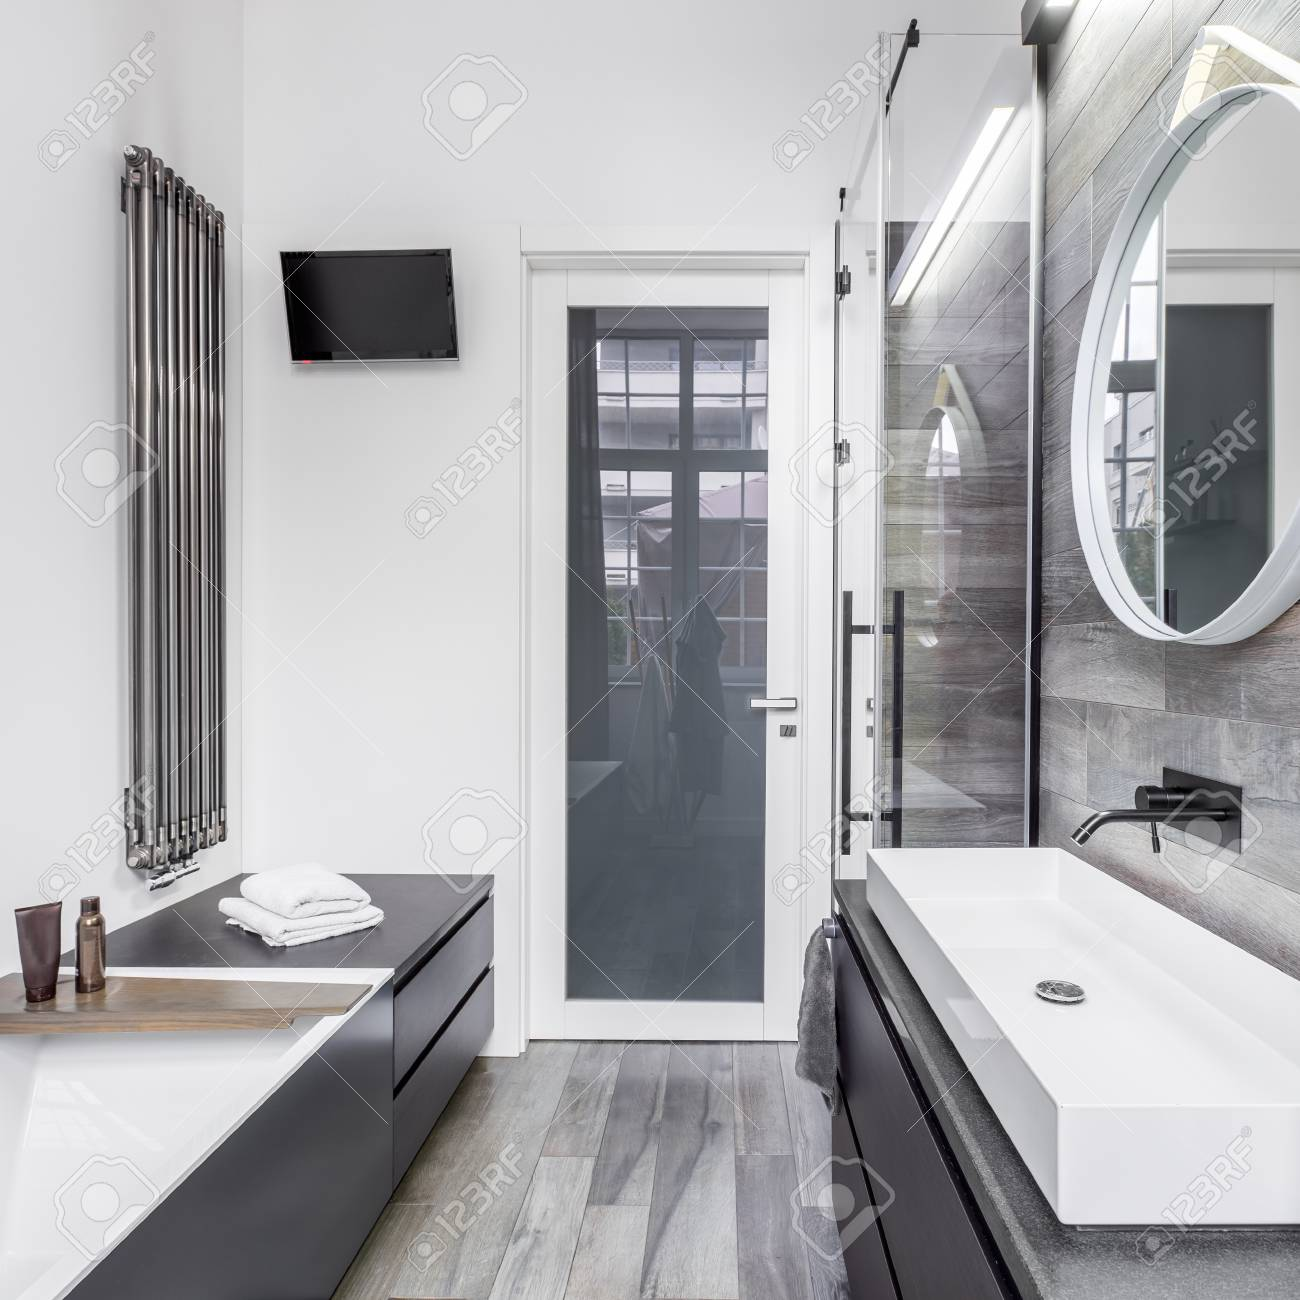 Elegant Design In Bathroom With White Walls And Wooden Tiles Stock ...